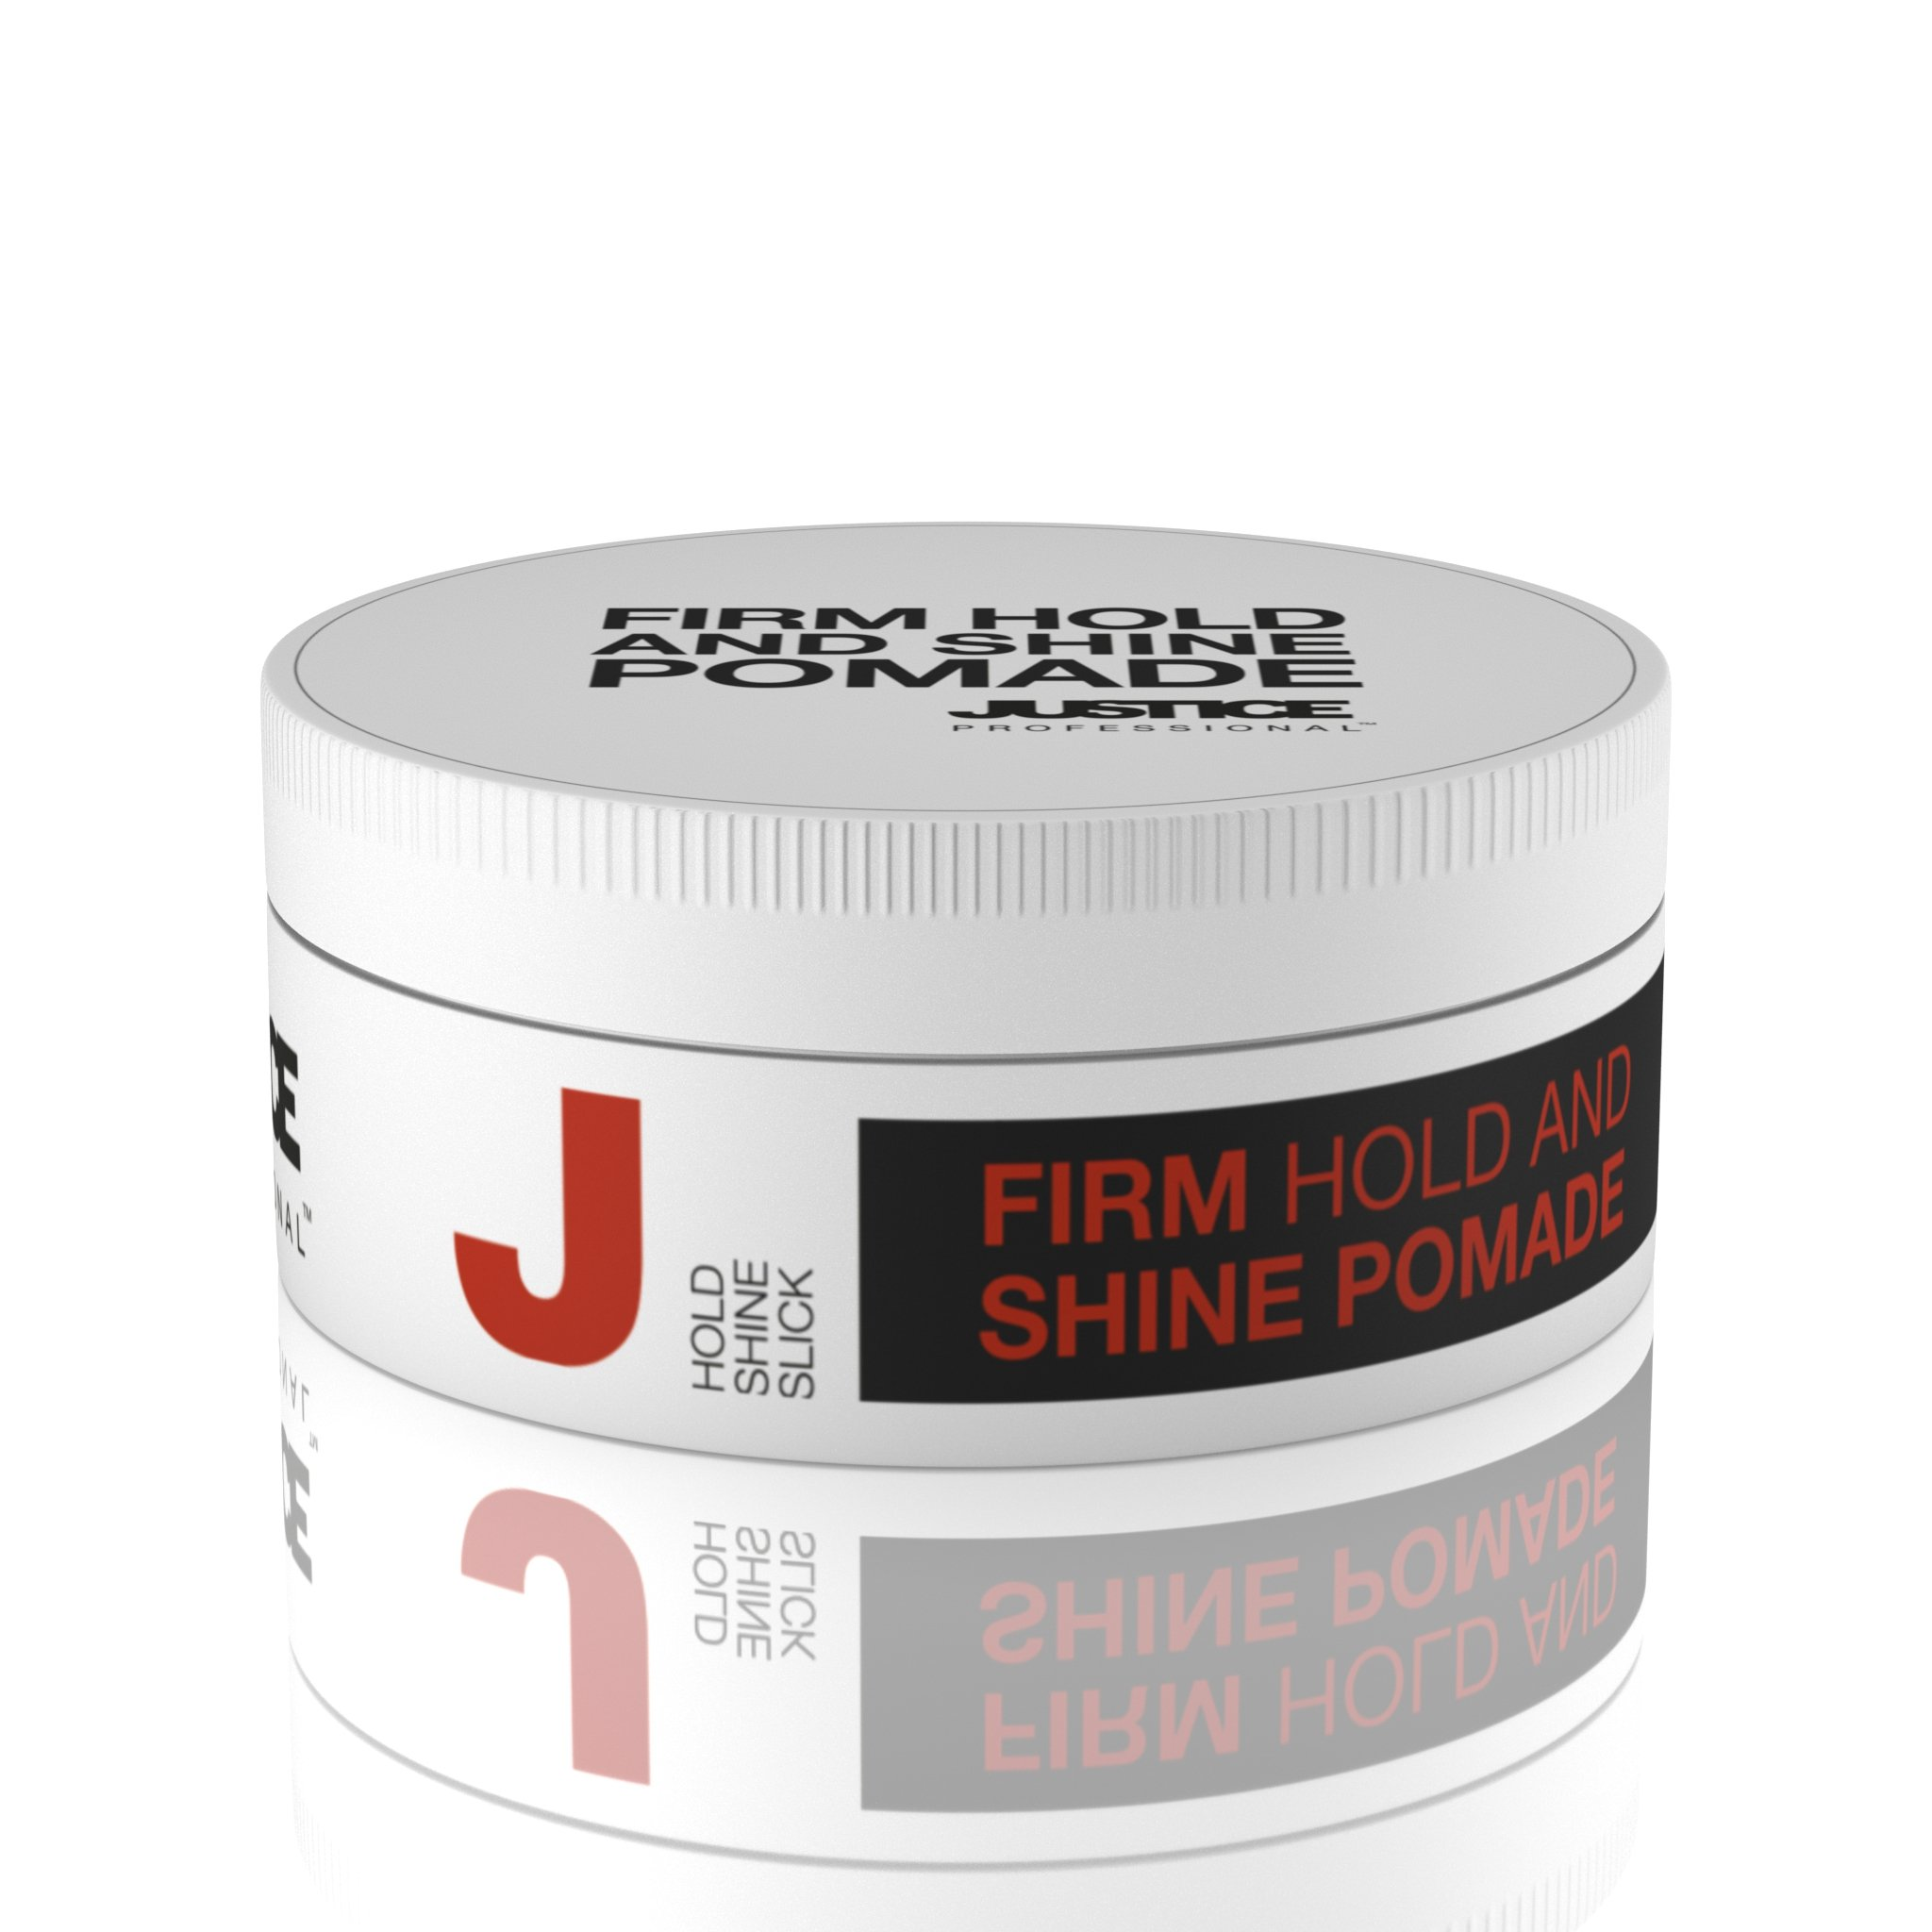 Super Hold Pomade - Natural Styling Paste Hair Product for Men and Women | Defines Curls and Waves | Add Volume and Shine to Your Slick Back or Classic Wet Look Style /JUSTICE Professional 100ml 3.4oz